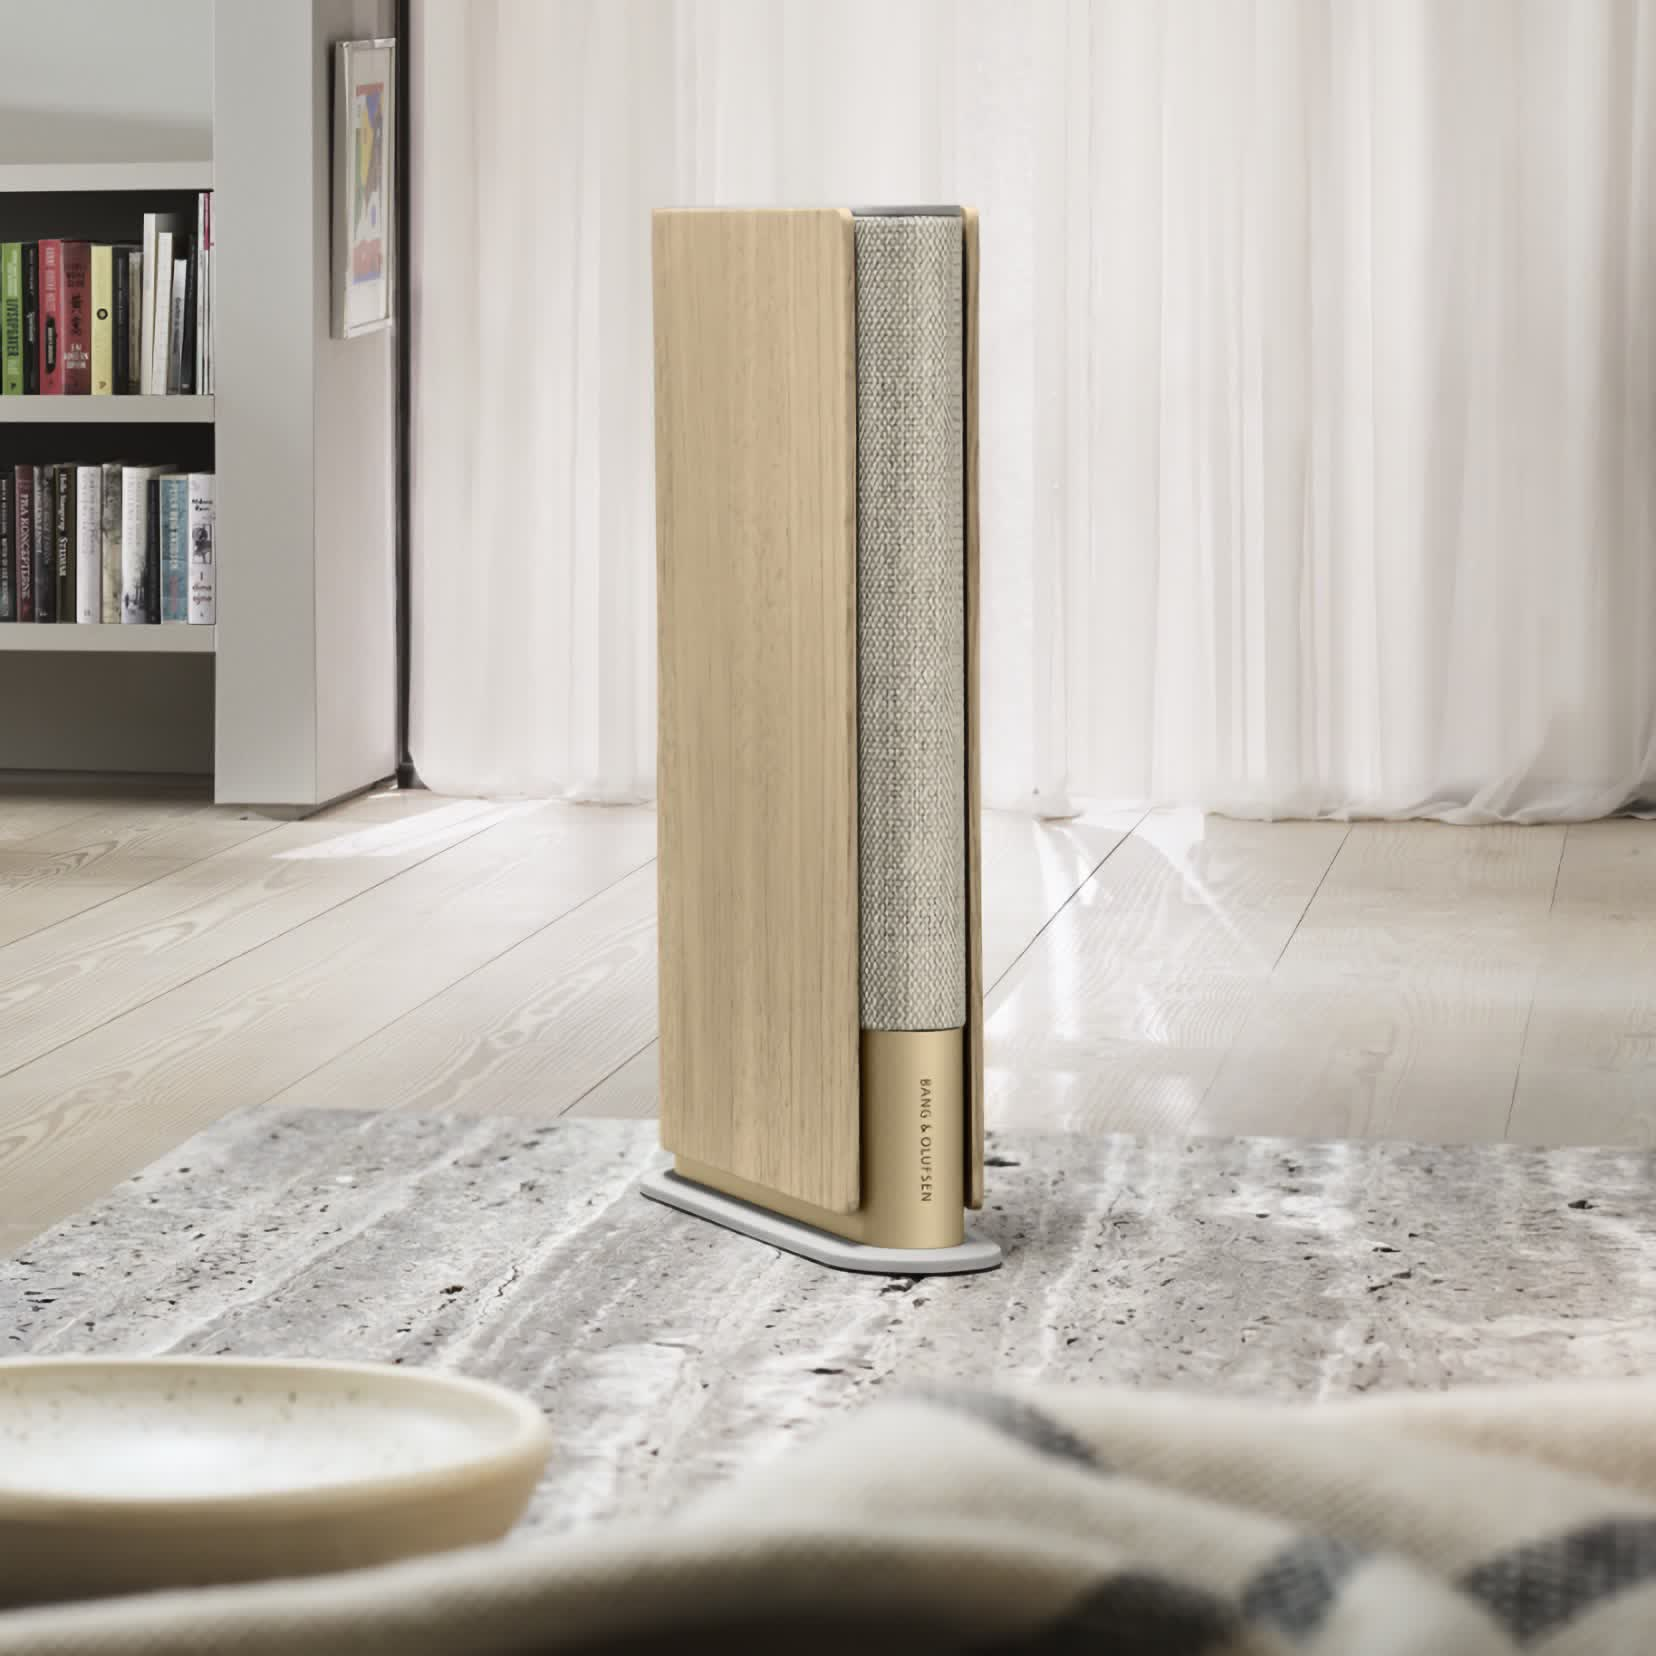 Bang & Olufsen Beosound Emerge is a uniquely designed speaker that looks like a book